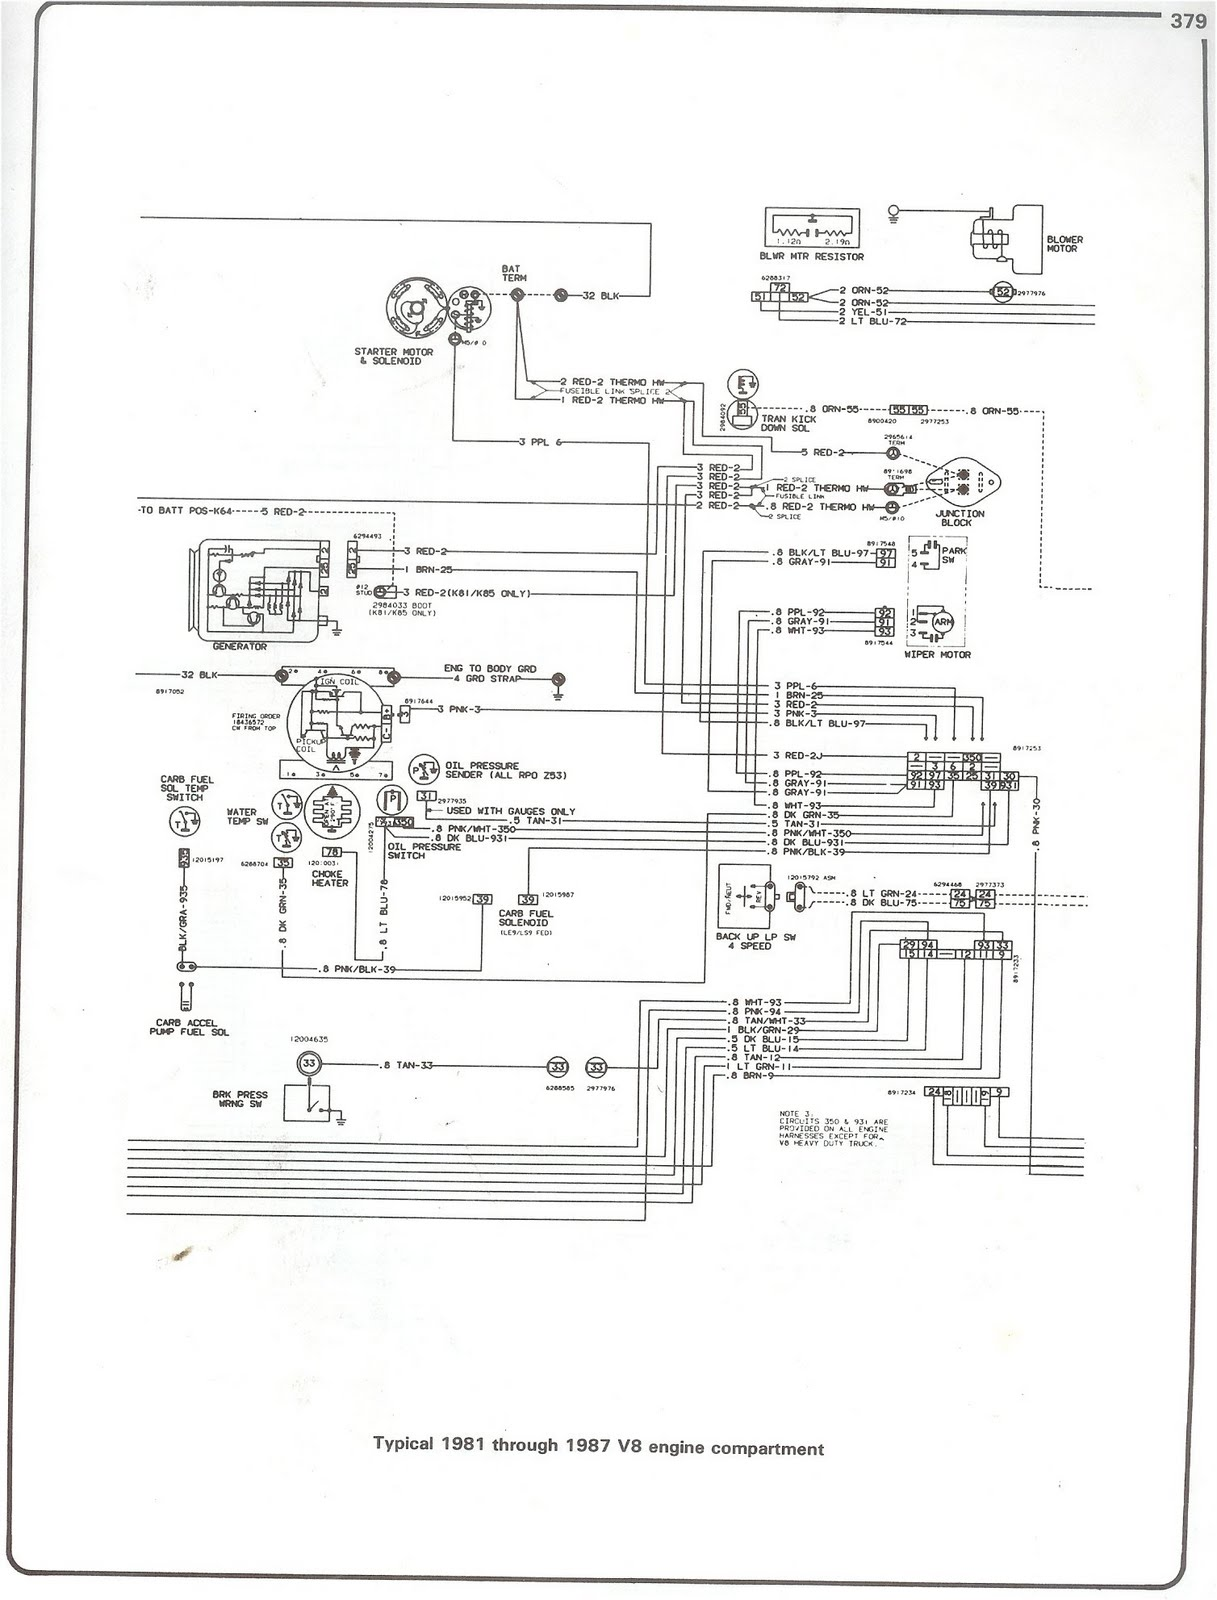 chevy k20 wiring diagram schematic wiring diagram